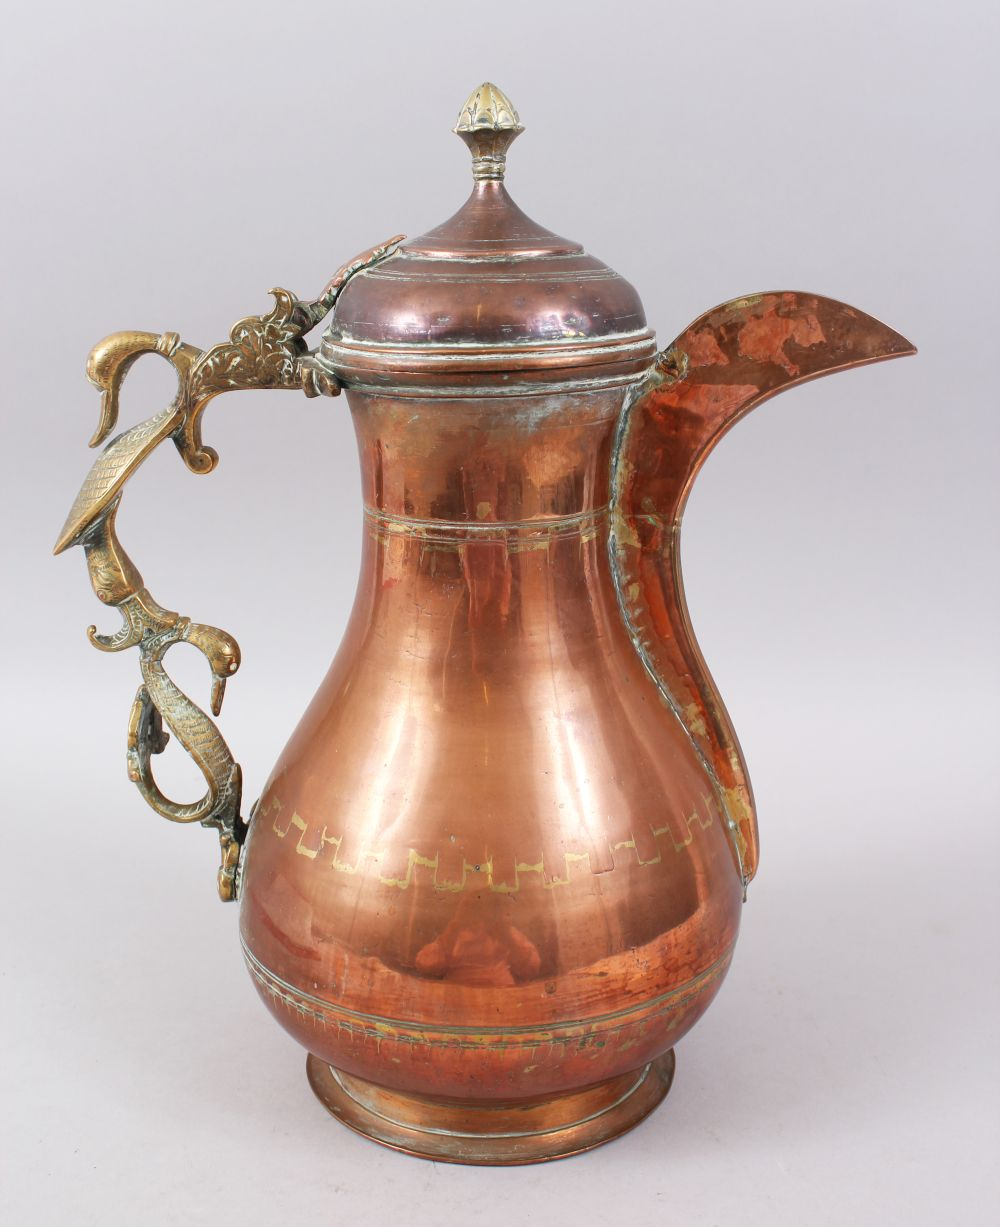 Lot 18 - A LARGE 19TH CENTURY INDIAN KASHMIR COFFEE POT with unusual double duck handle.